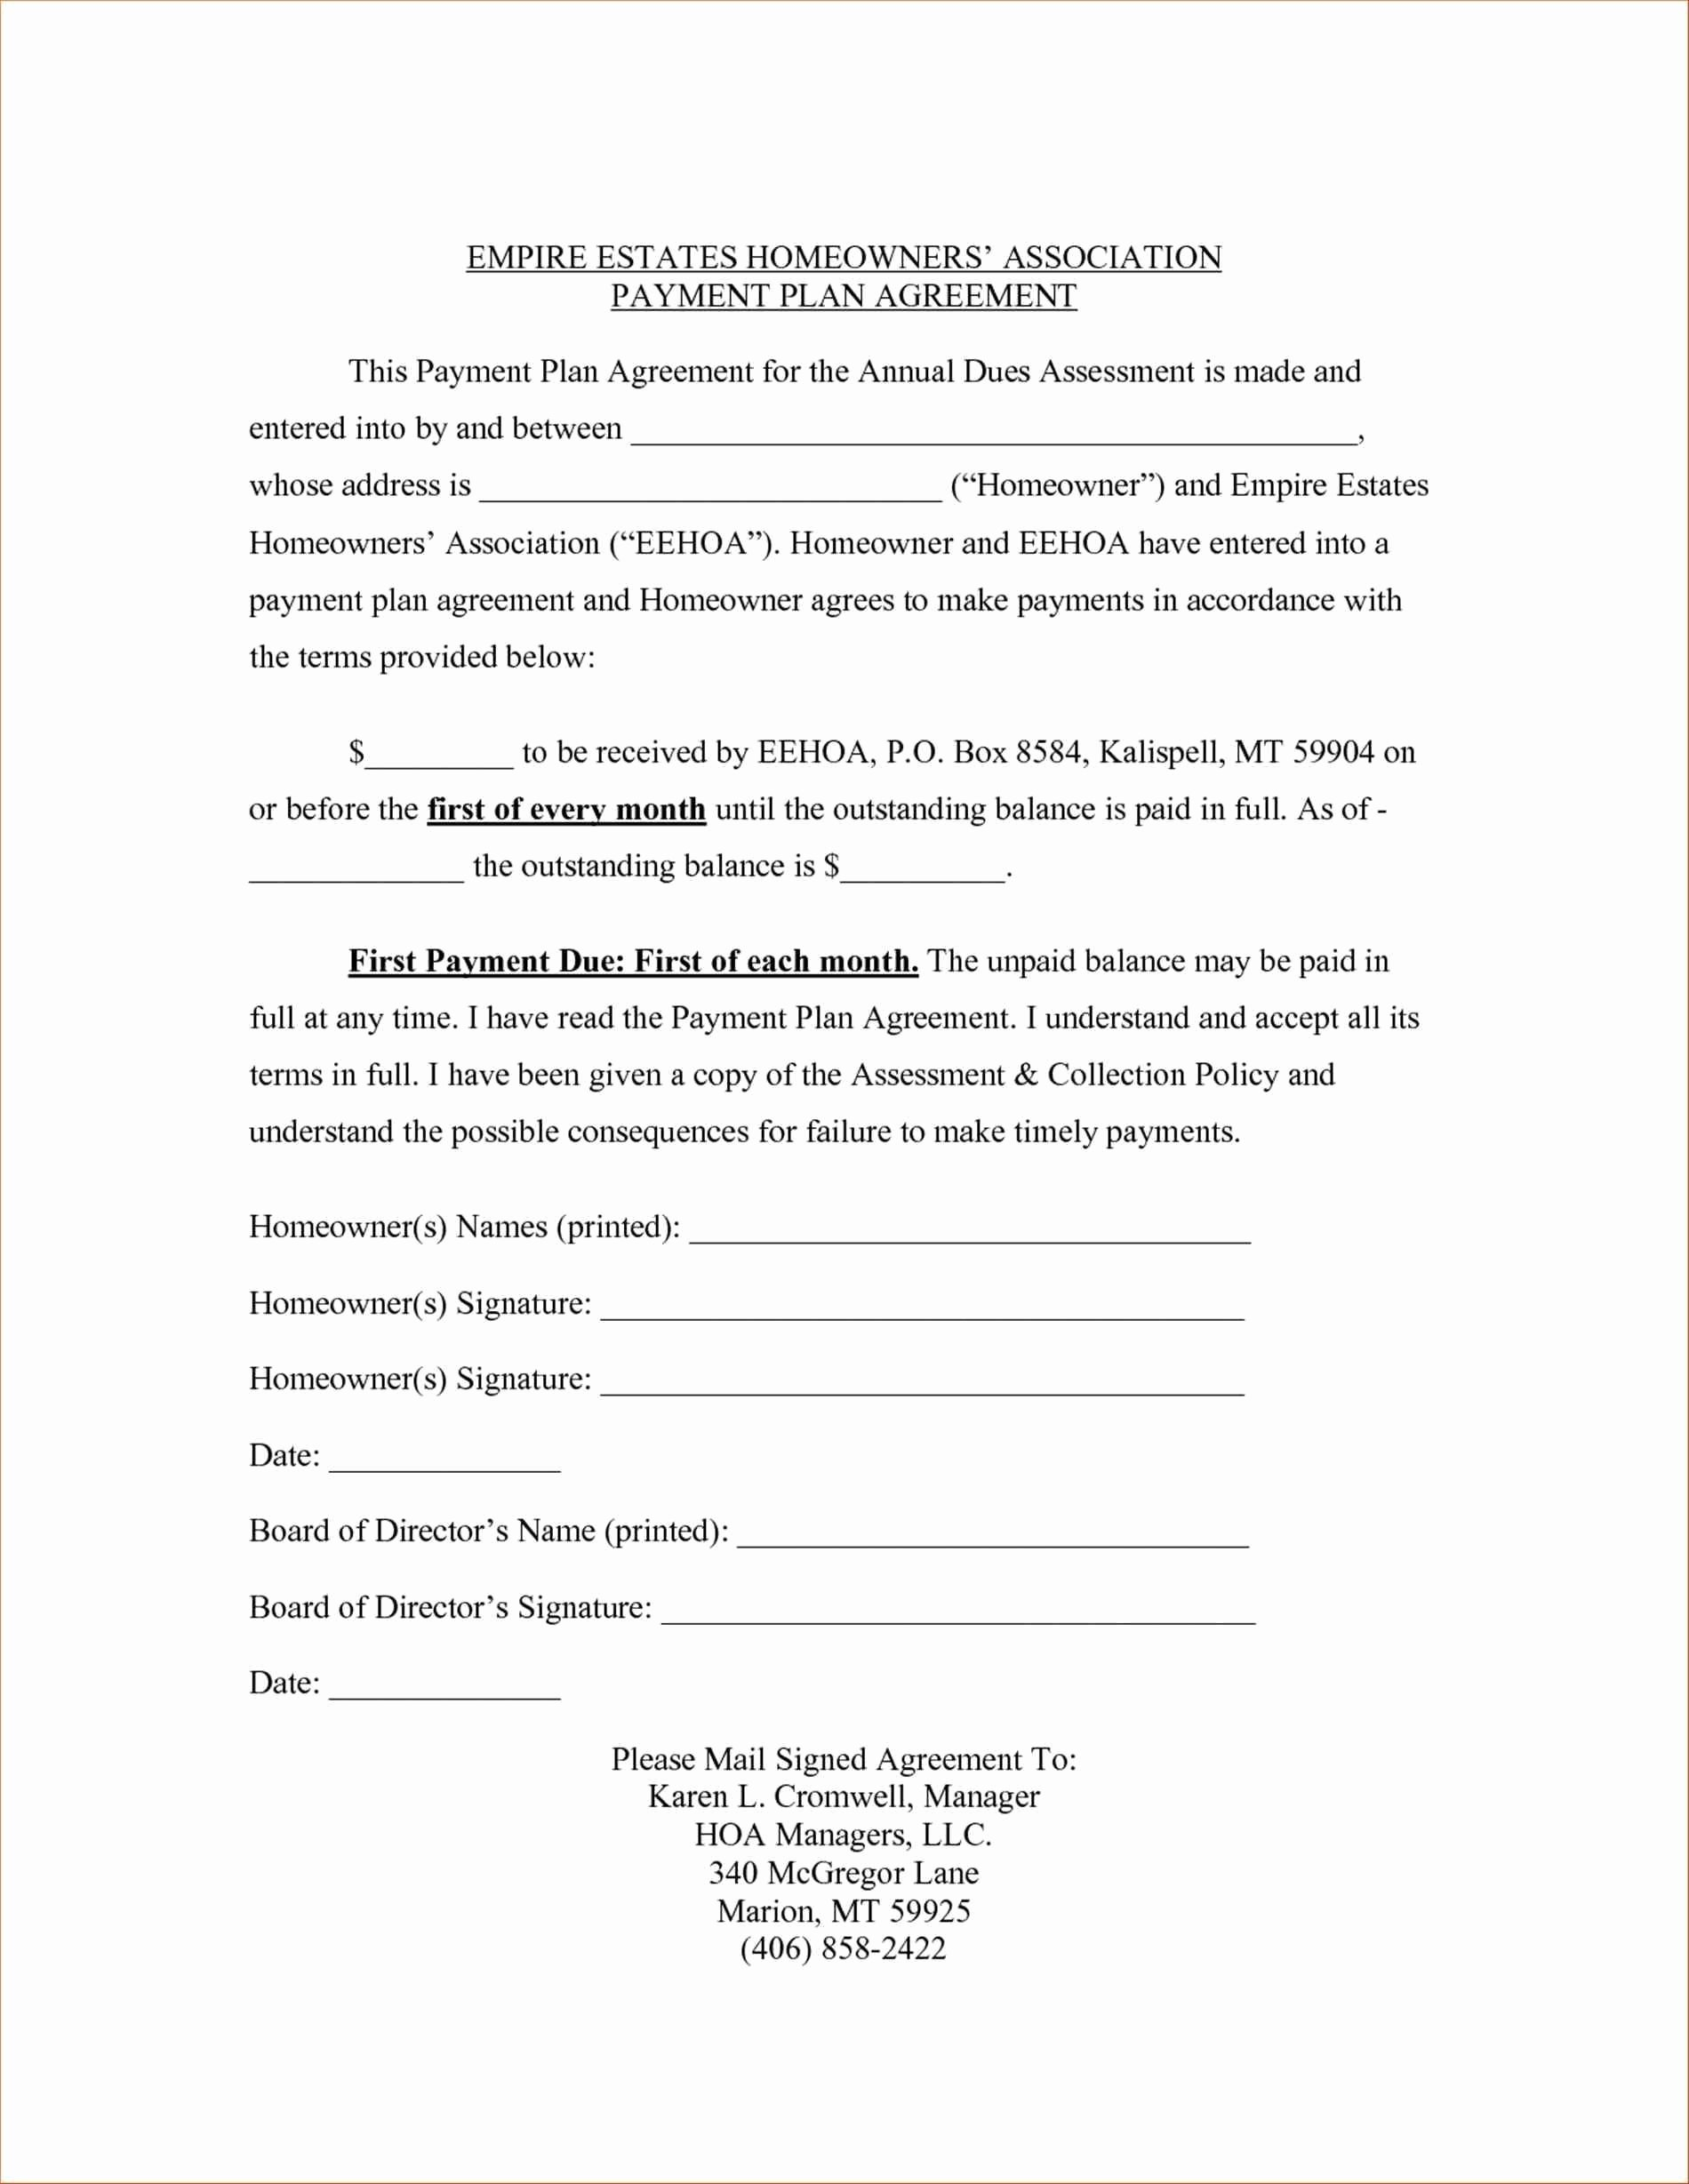 Dog Training Contract Template Beautiful Image Result for Payment Plan Contract Agreement Template